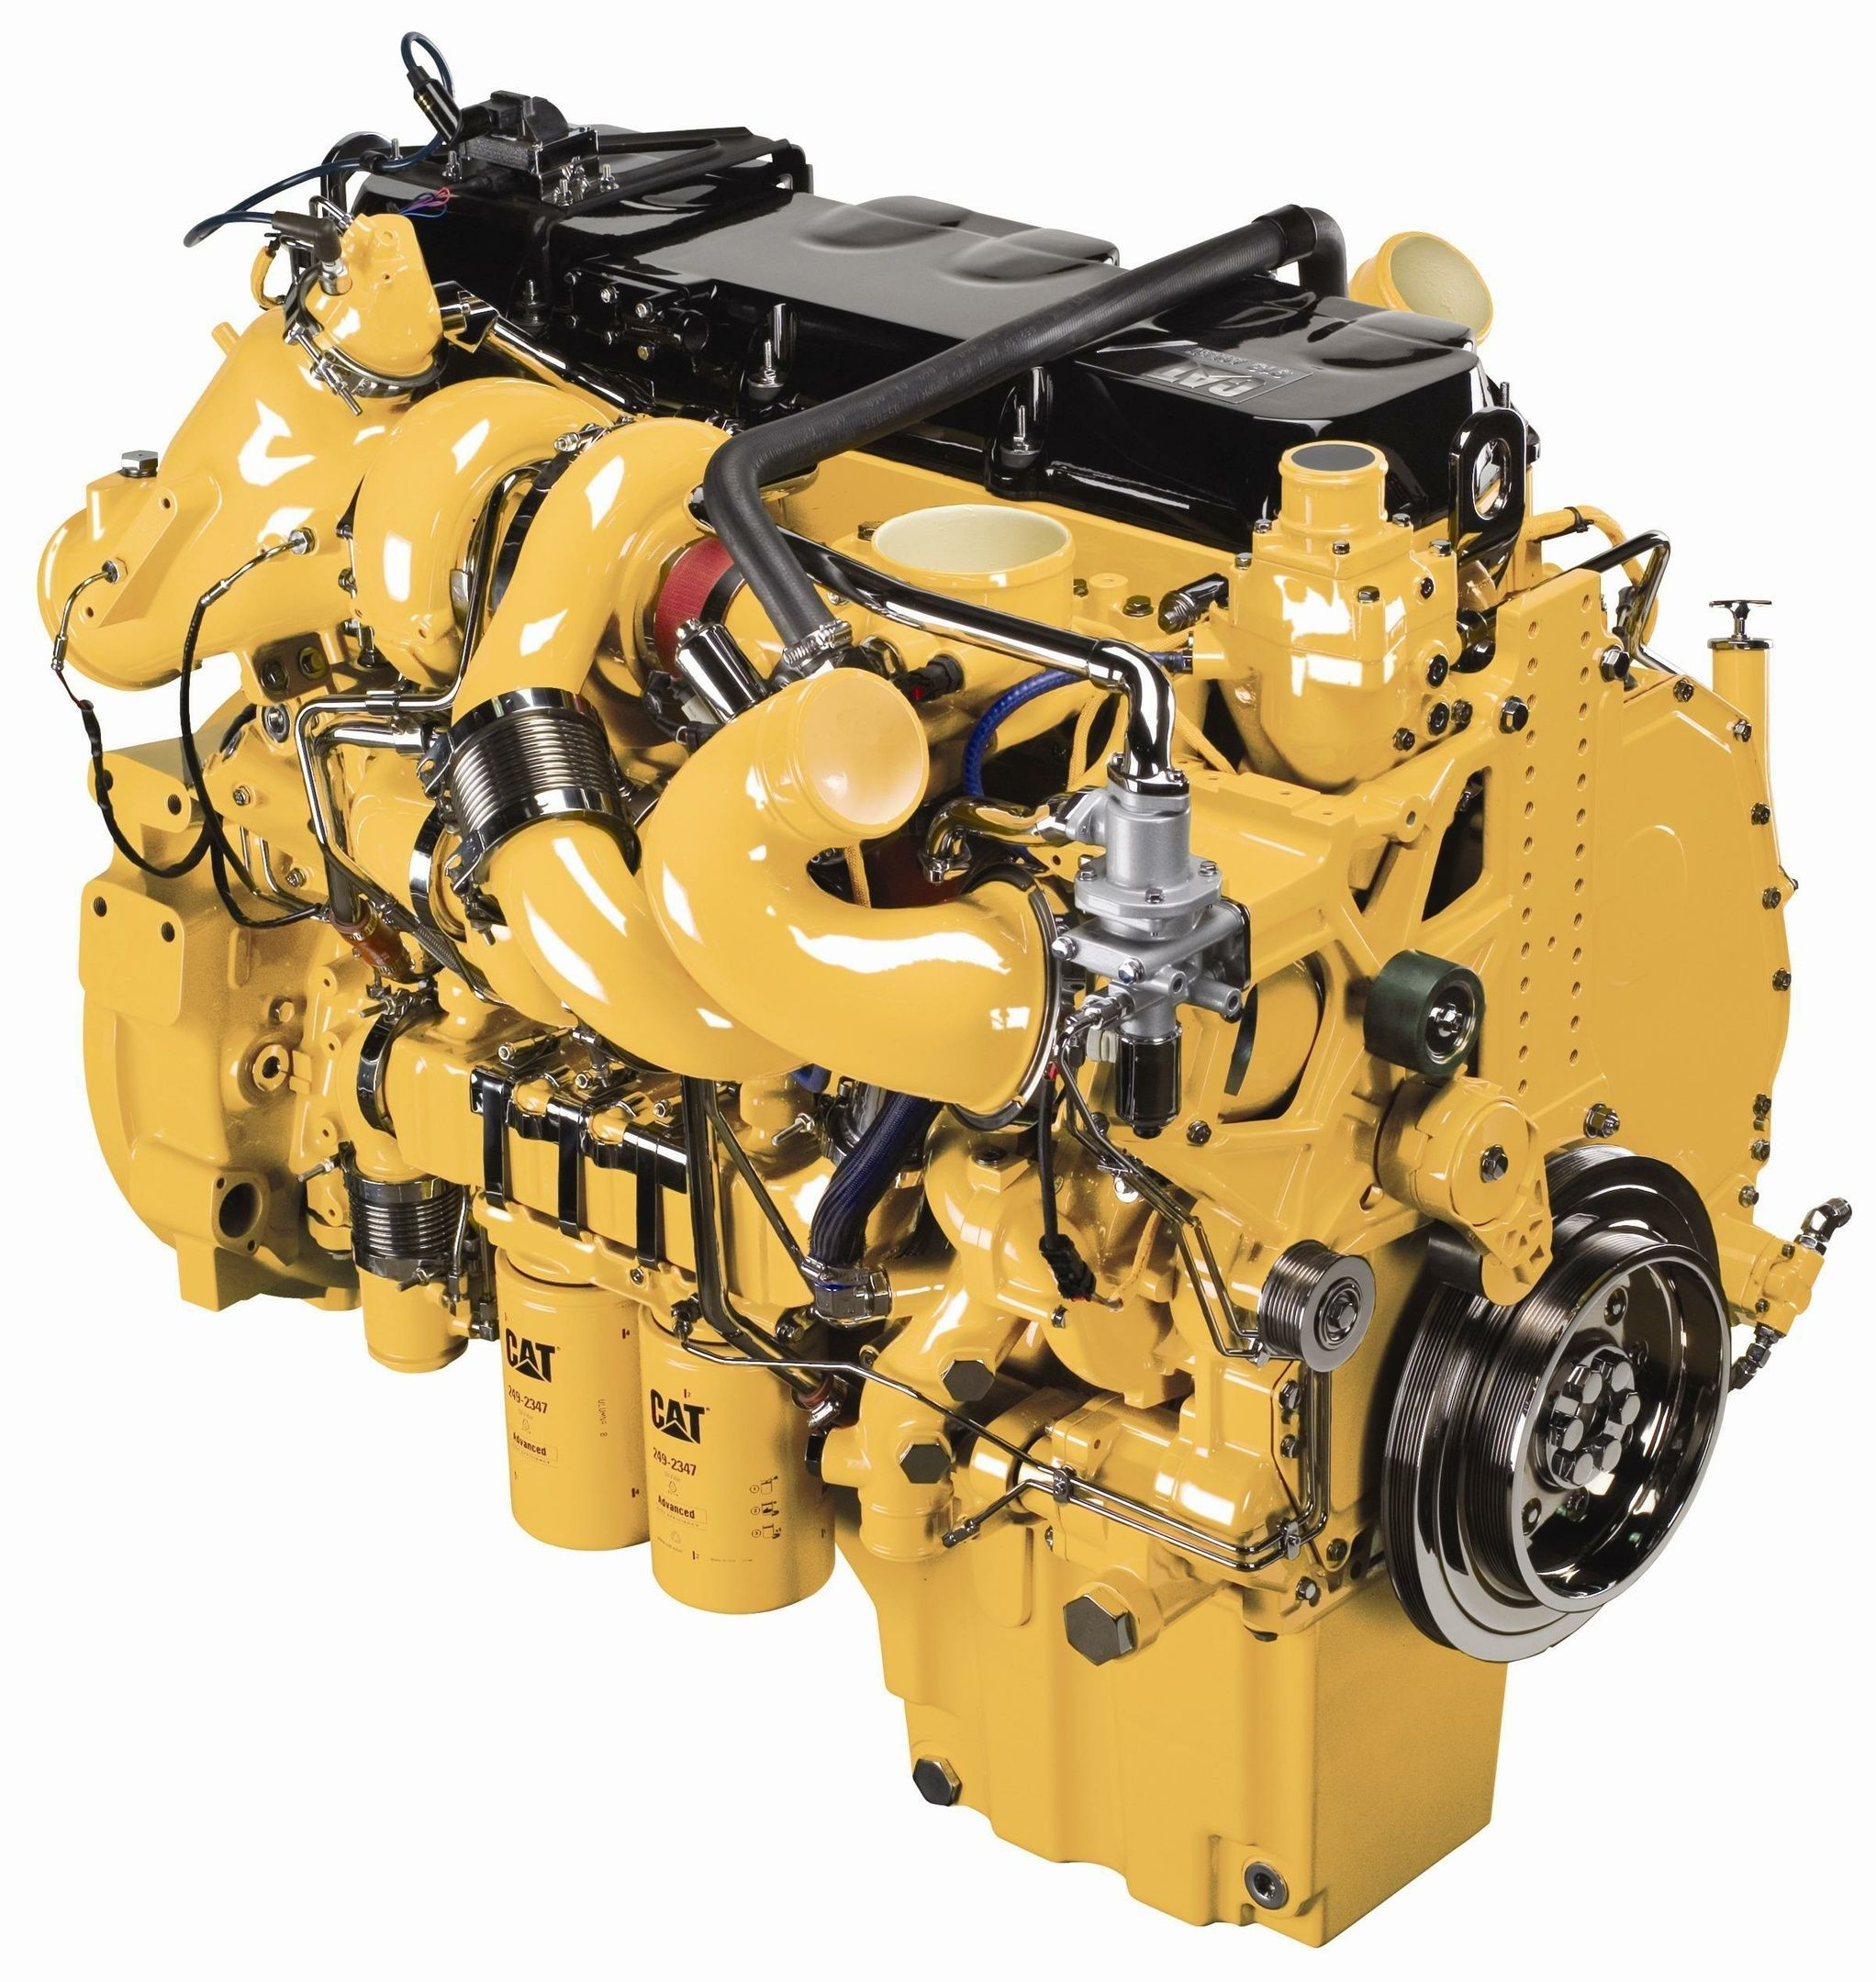 cat c15 engine diagram info wiring \u2022 cat c15 engine specifications c13 caterpillar engine diagram my wiring diagram rh detoxicrecenze com cat c15 acert engine diagram caterpillar